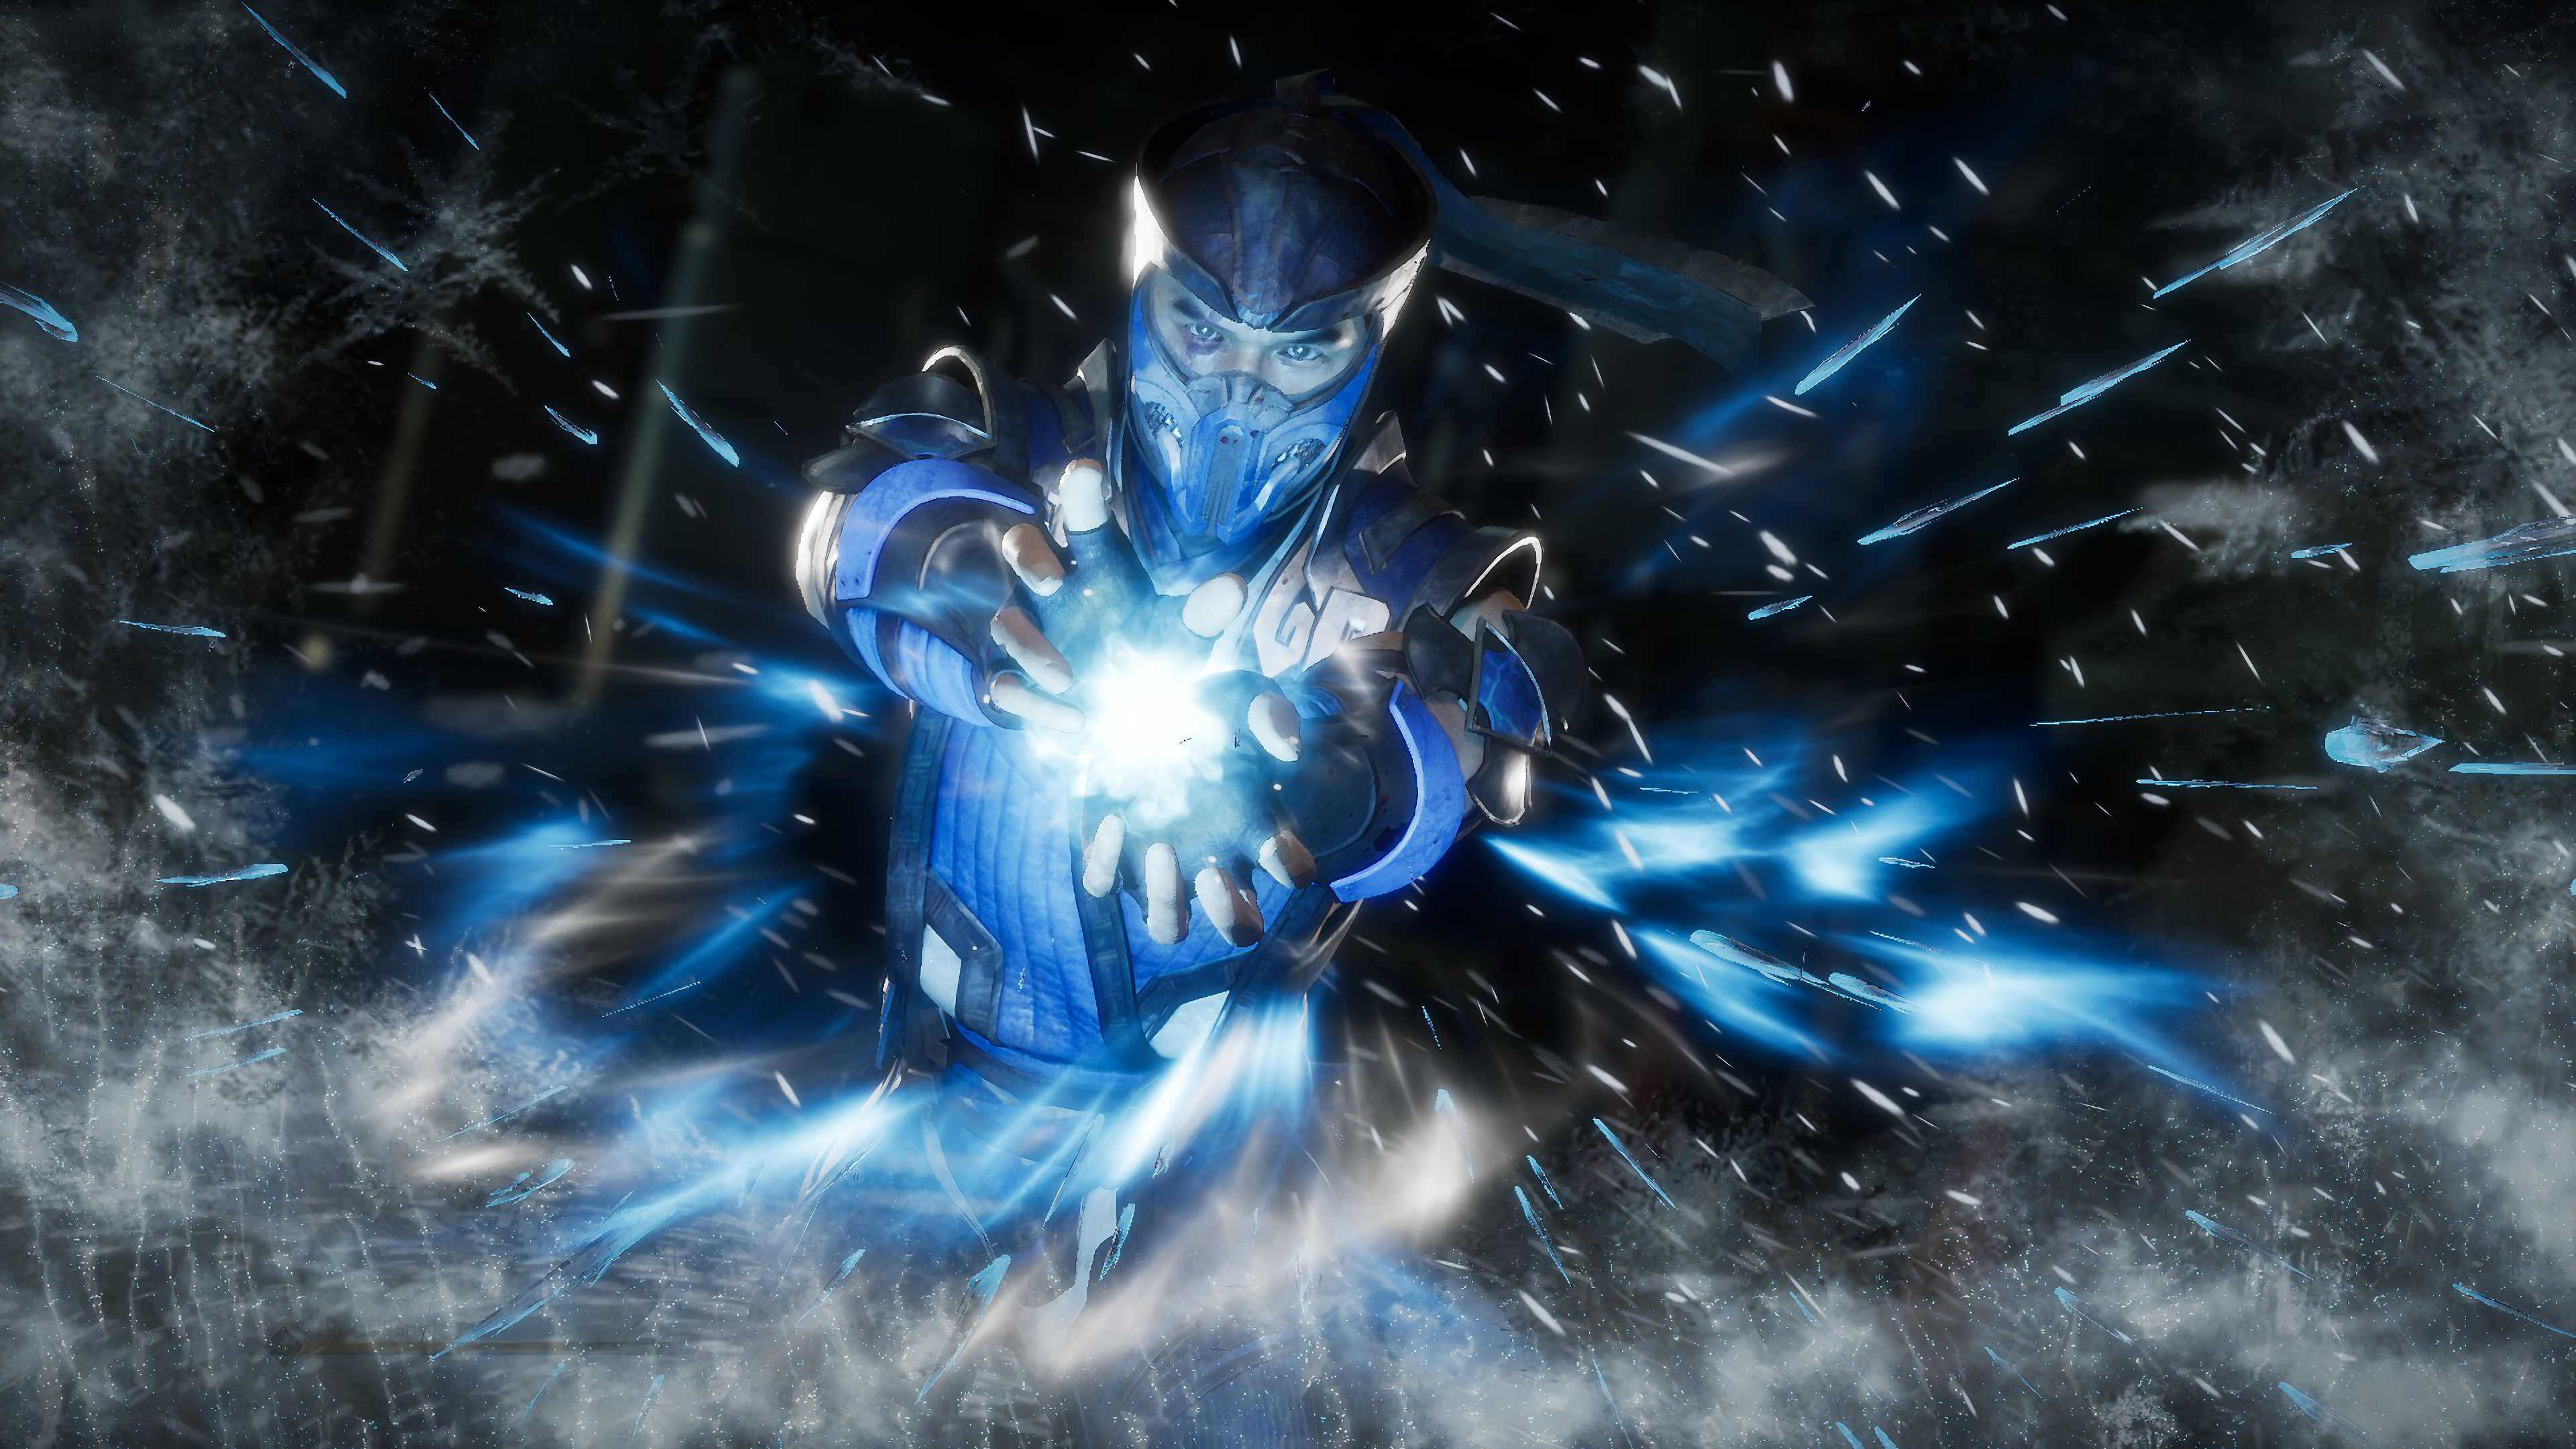 Sub Zero Mortal Kombat 11 4k Wallpaper 200